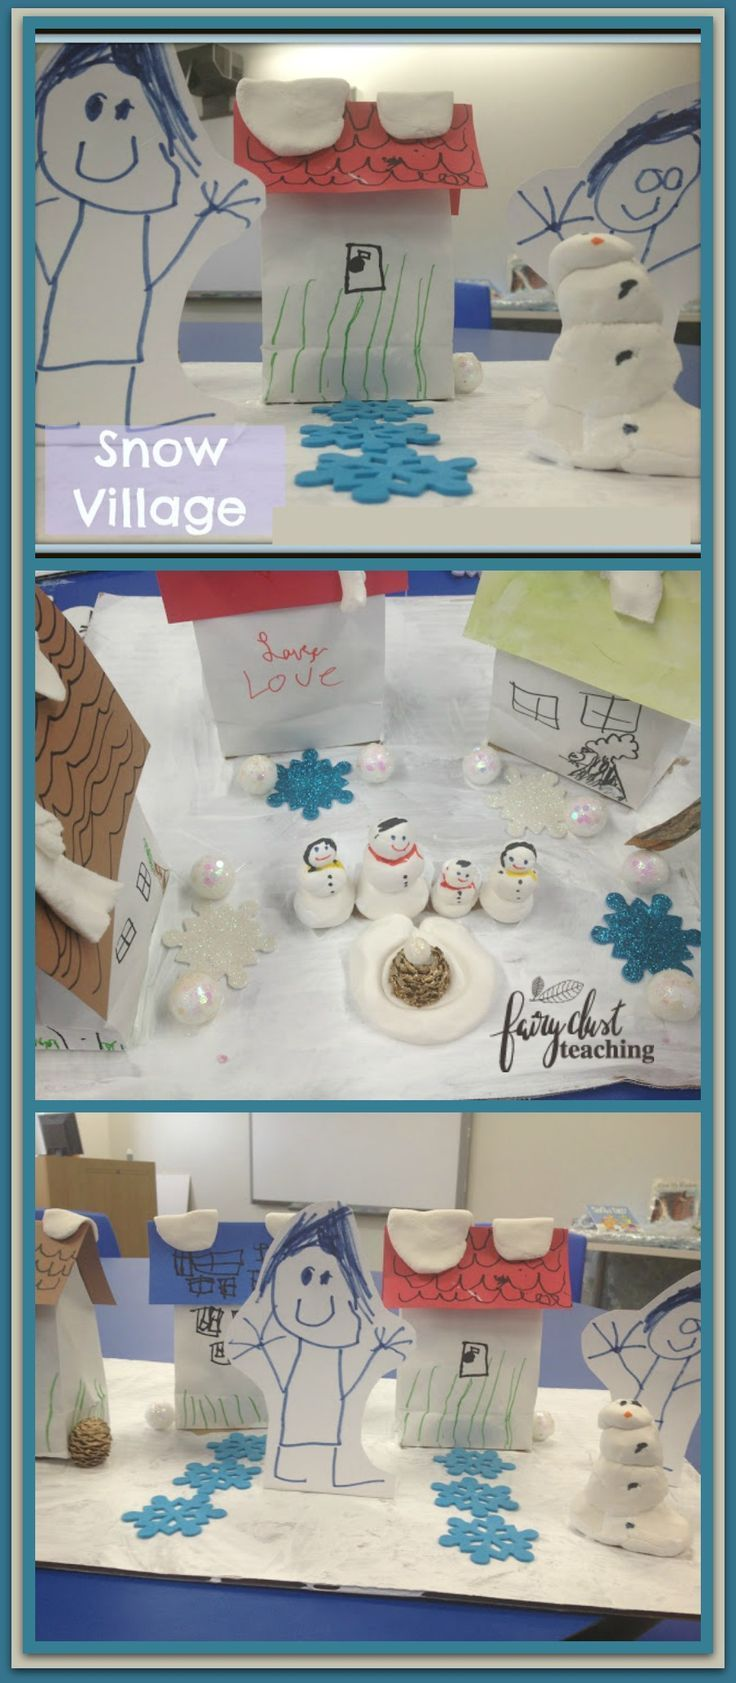 Snowball Village - A step-by-step guide to creating your own winter wonderland Snowball Village! Fairy Dust Teaching